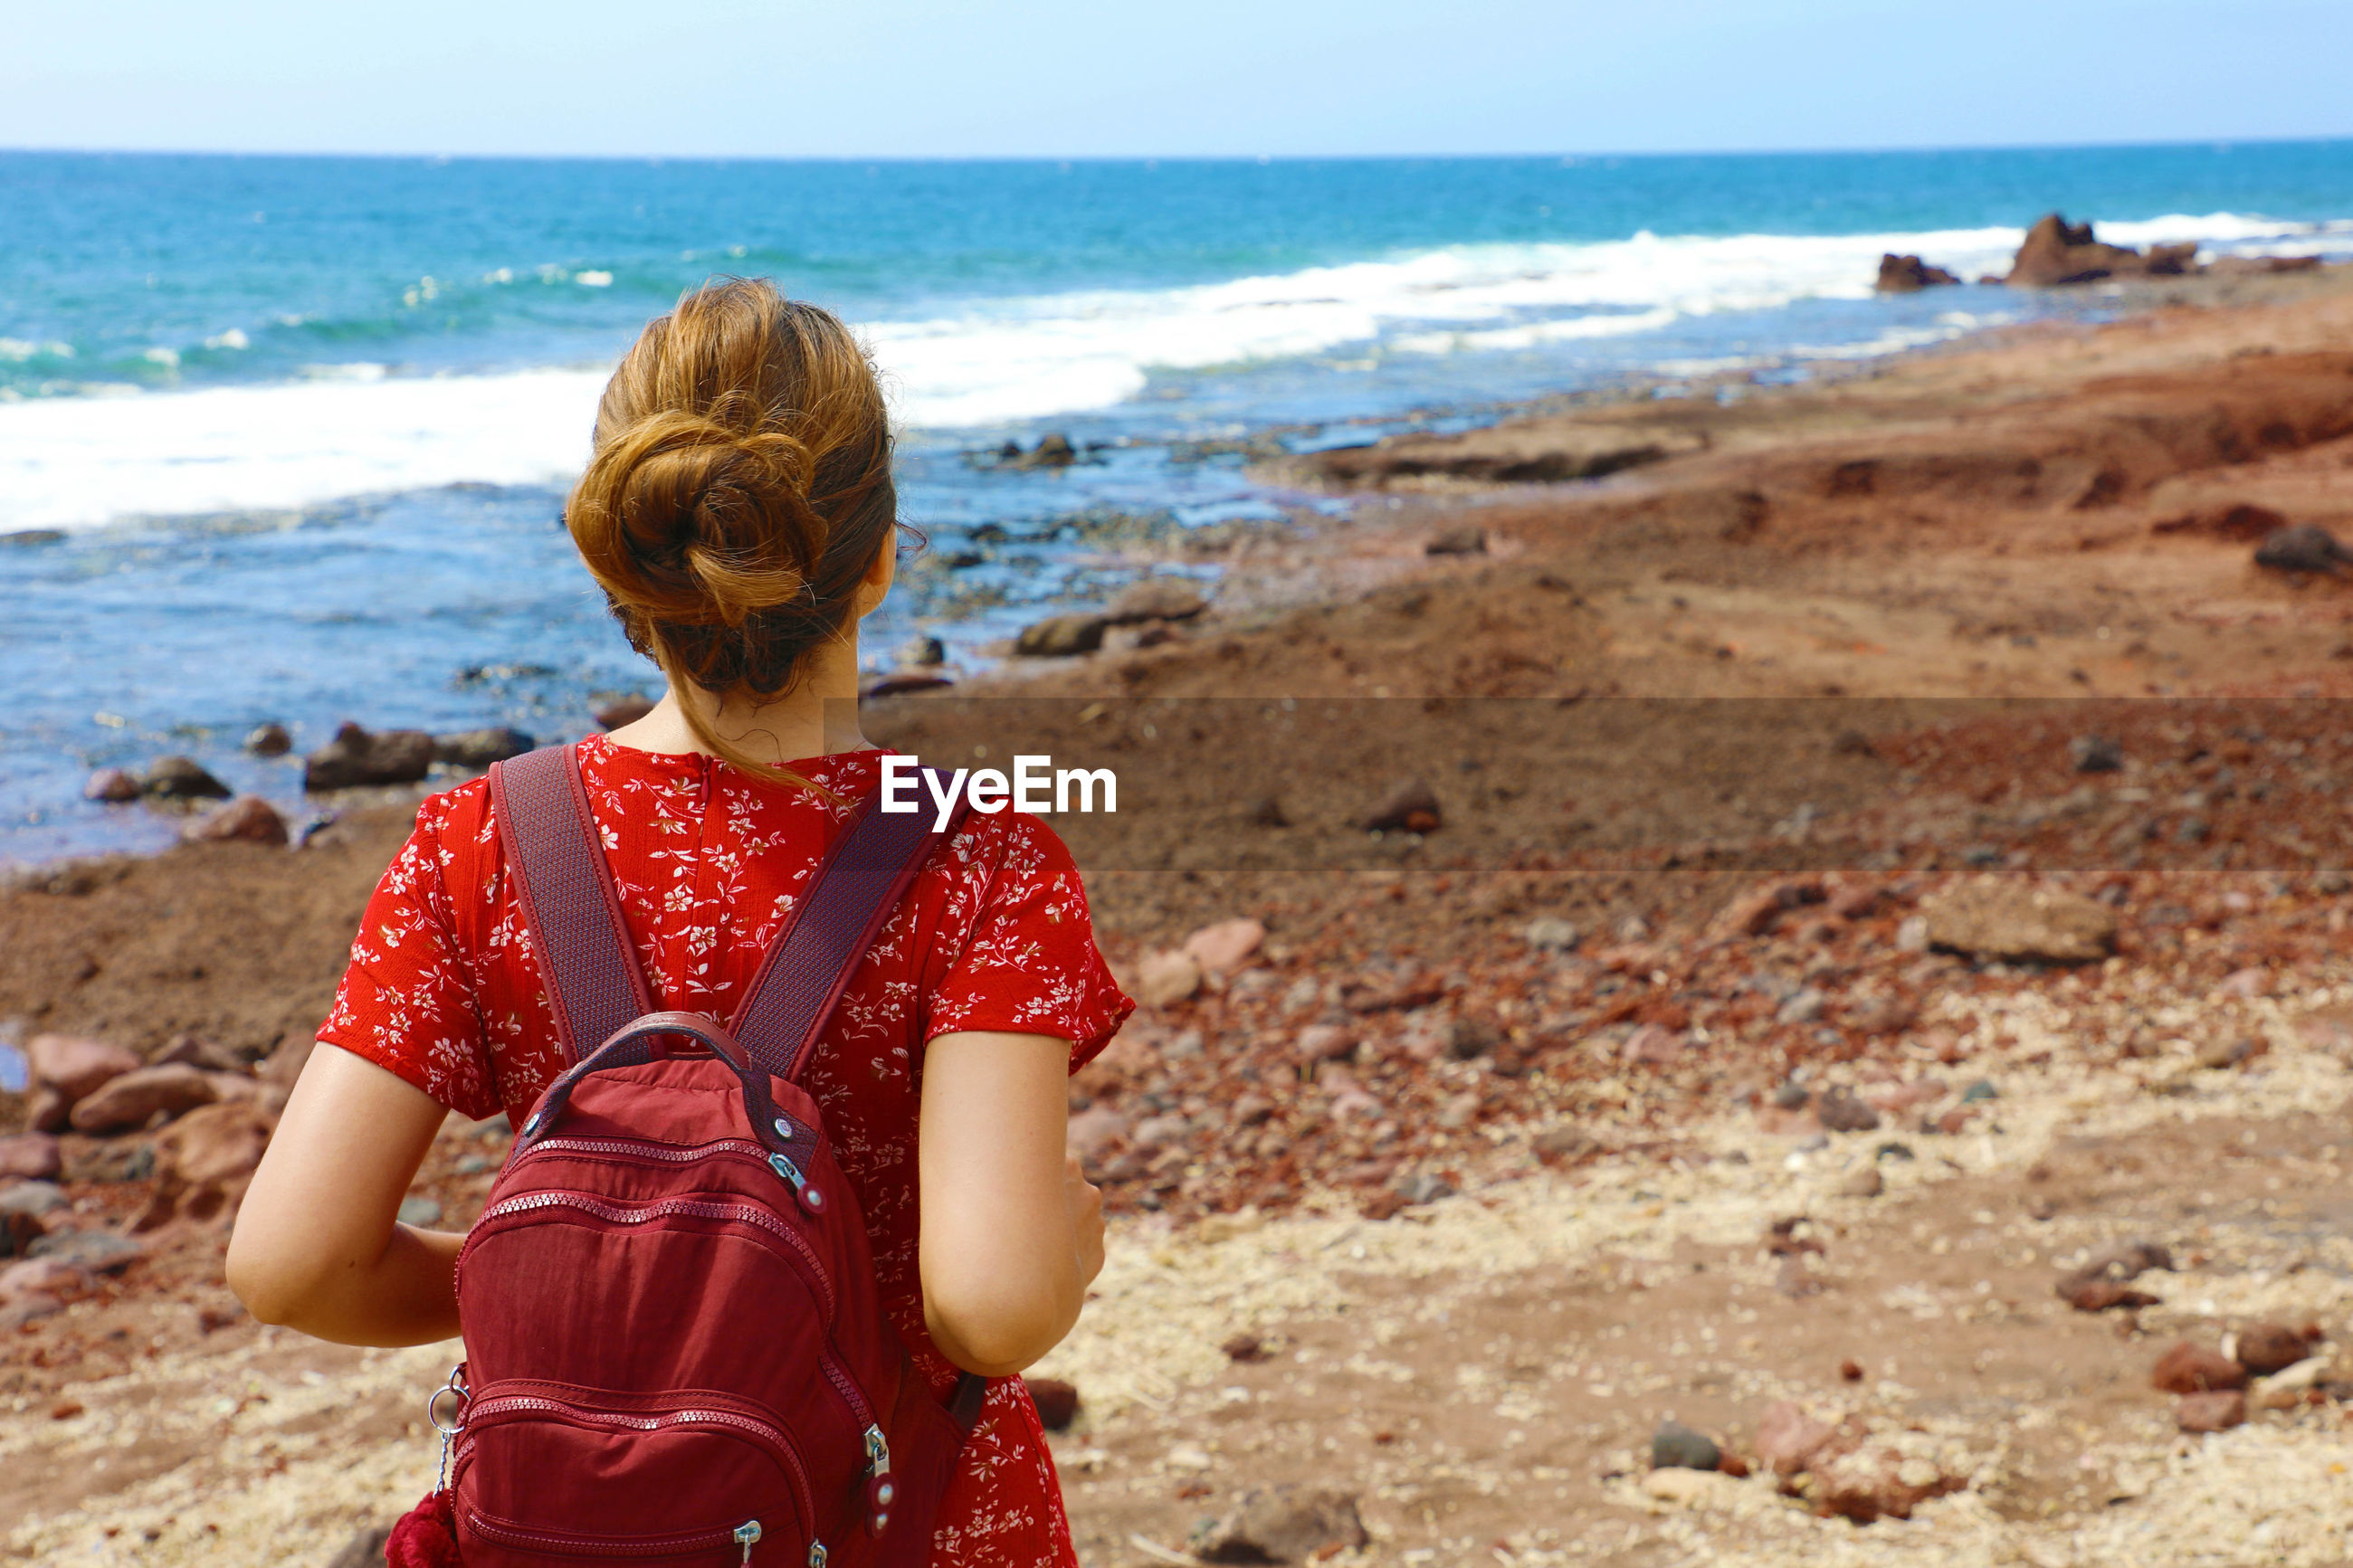 Rear view of woman with backpack standing at beach